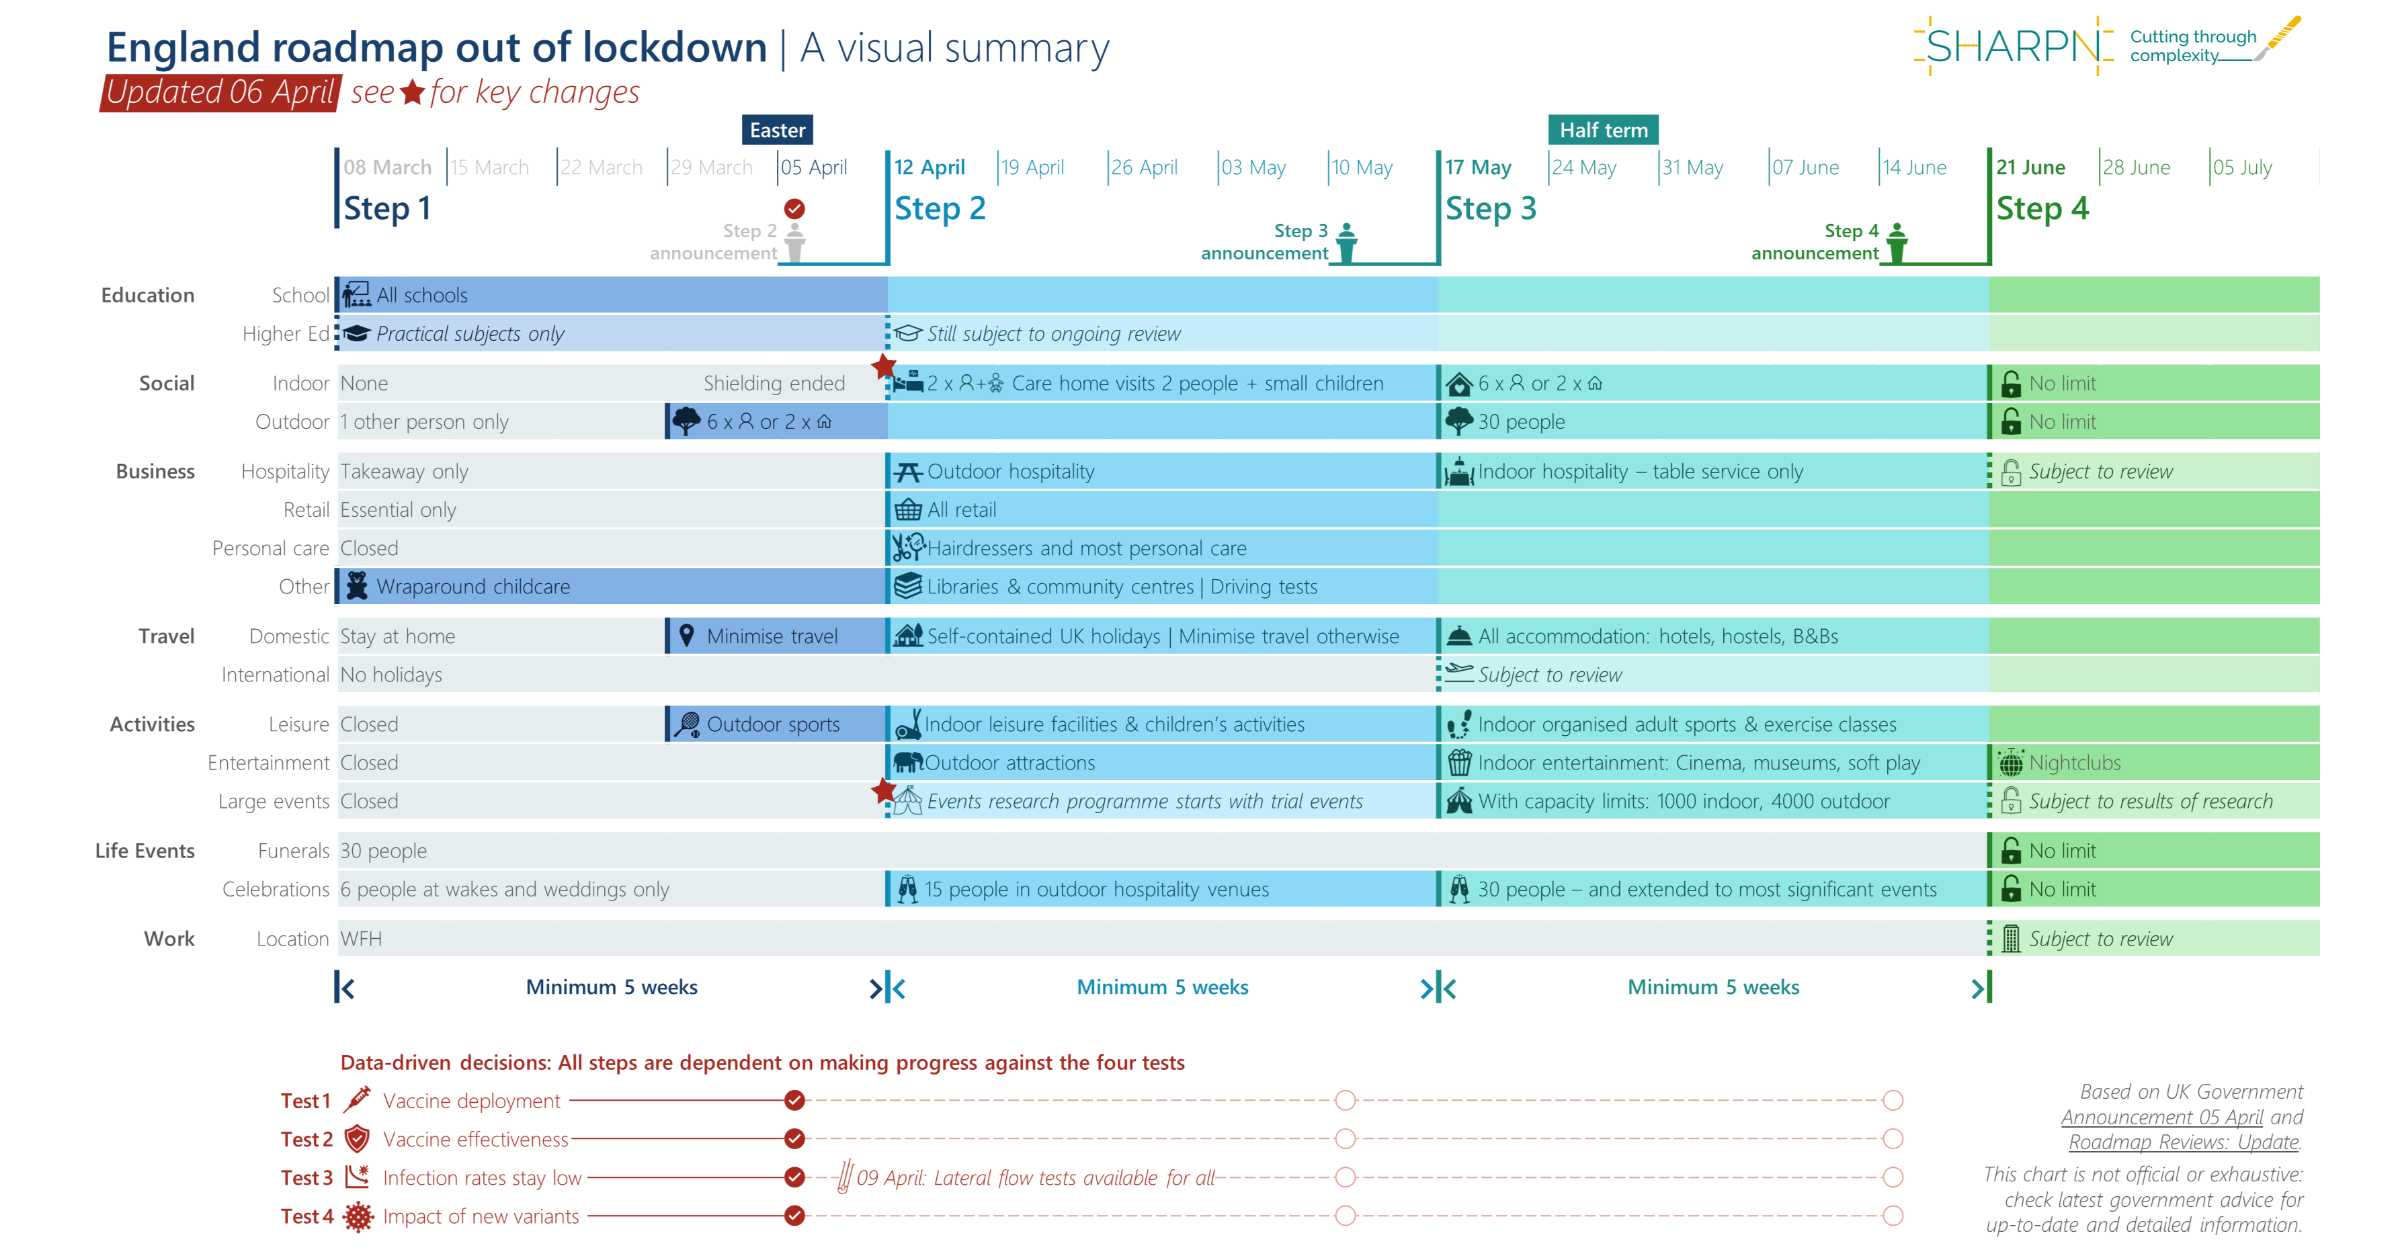 A GANTT-style simplified plan summarising the key changes in the England roadmap out of lockdown published in March 2021